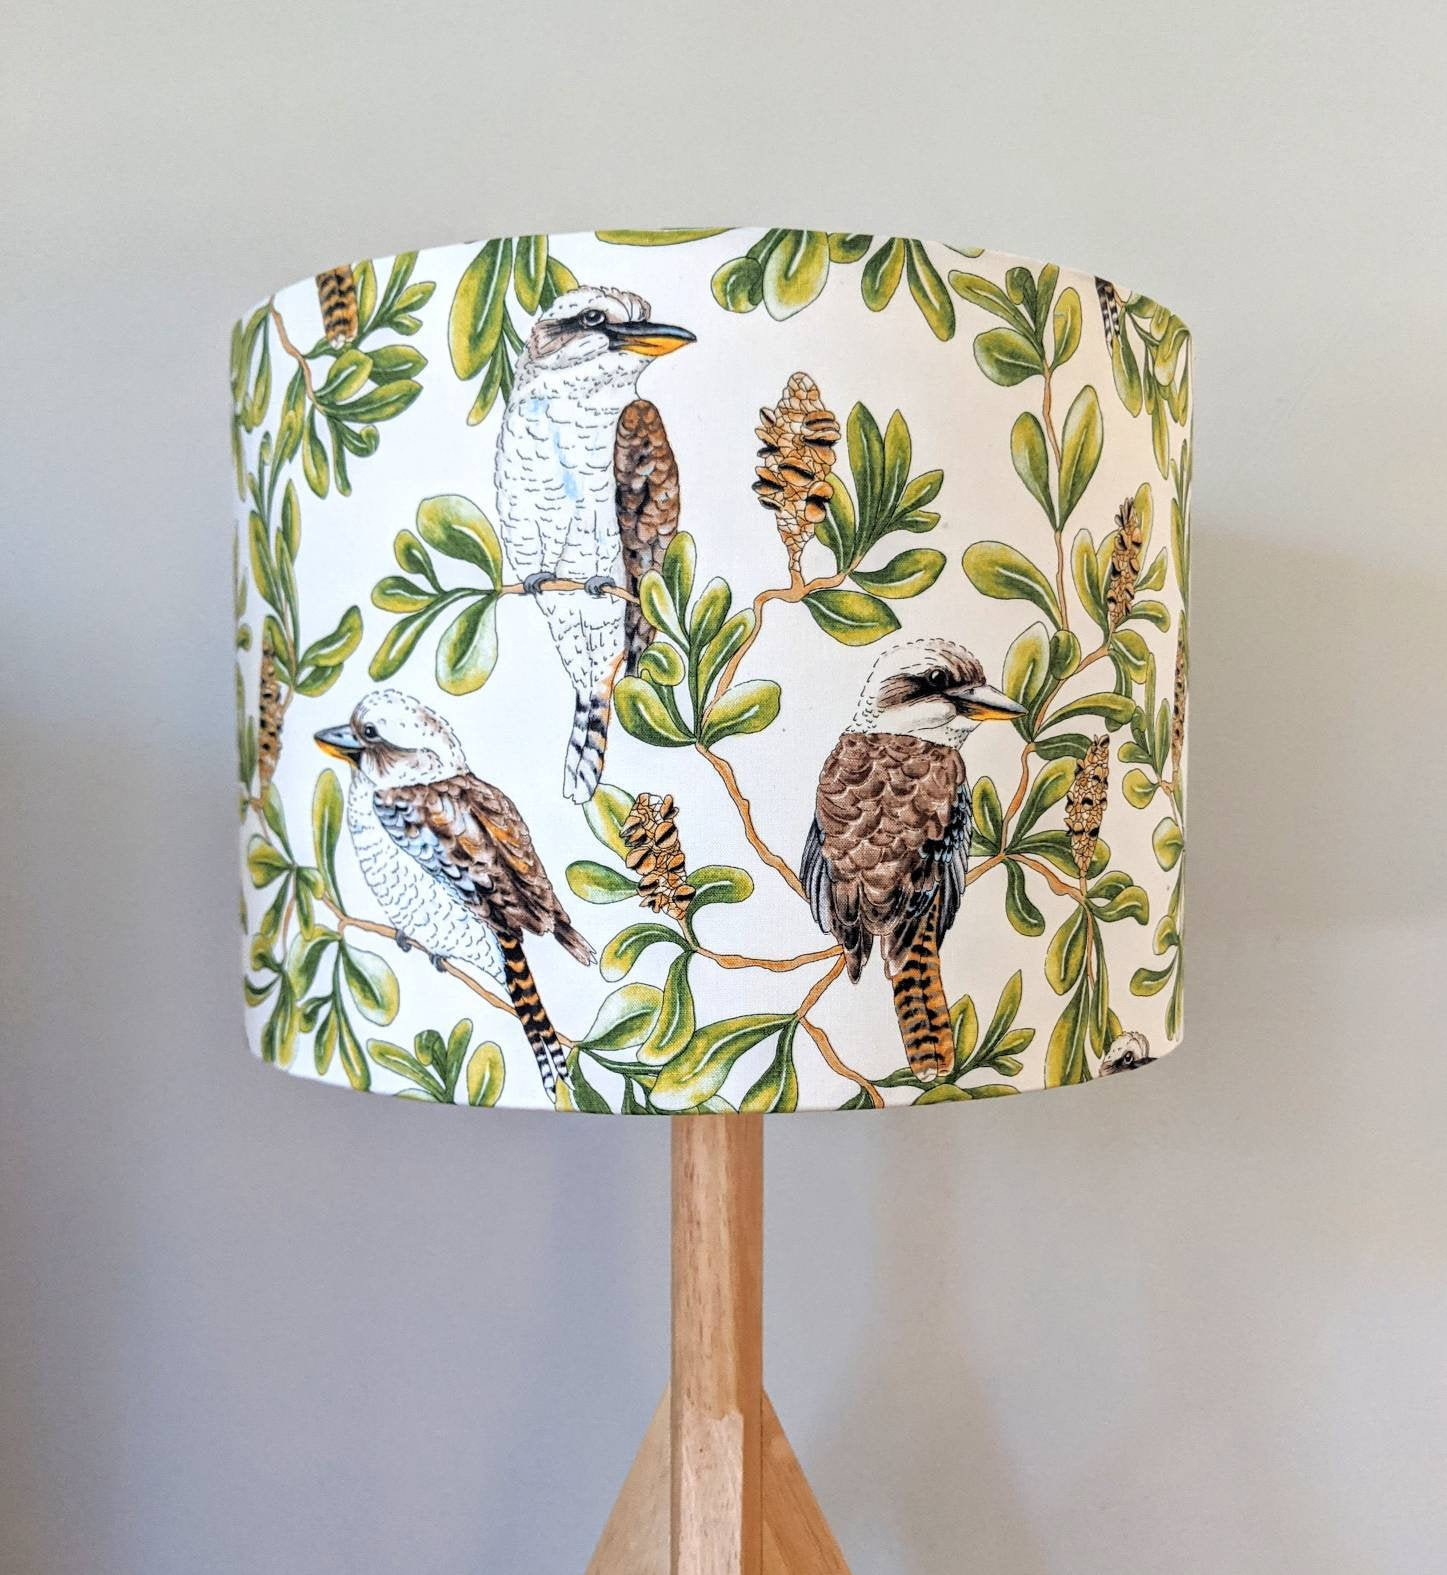 Kookaburras Lampshade Hello Boho Handcrafted Lampshades Homewares Home Decor